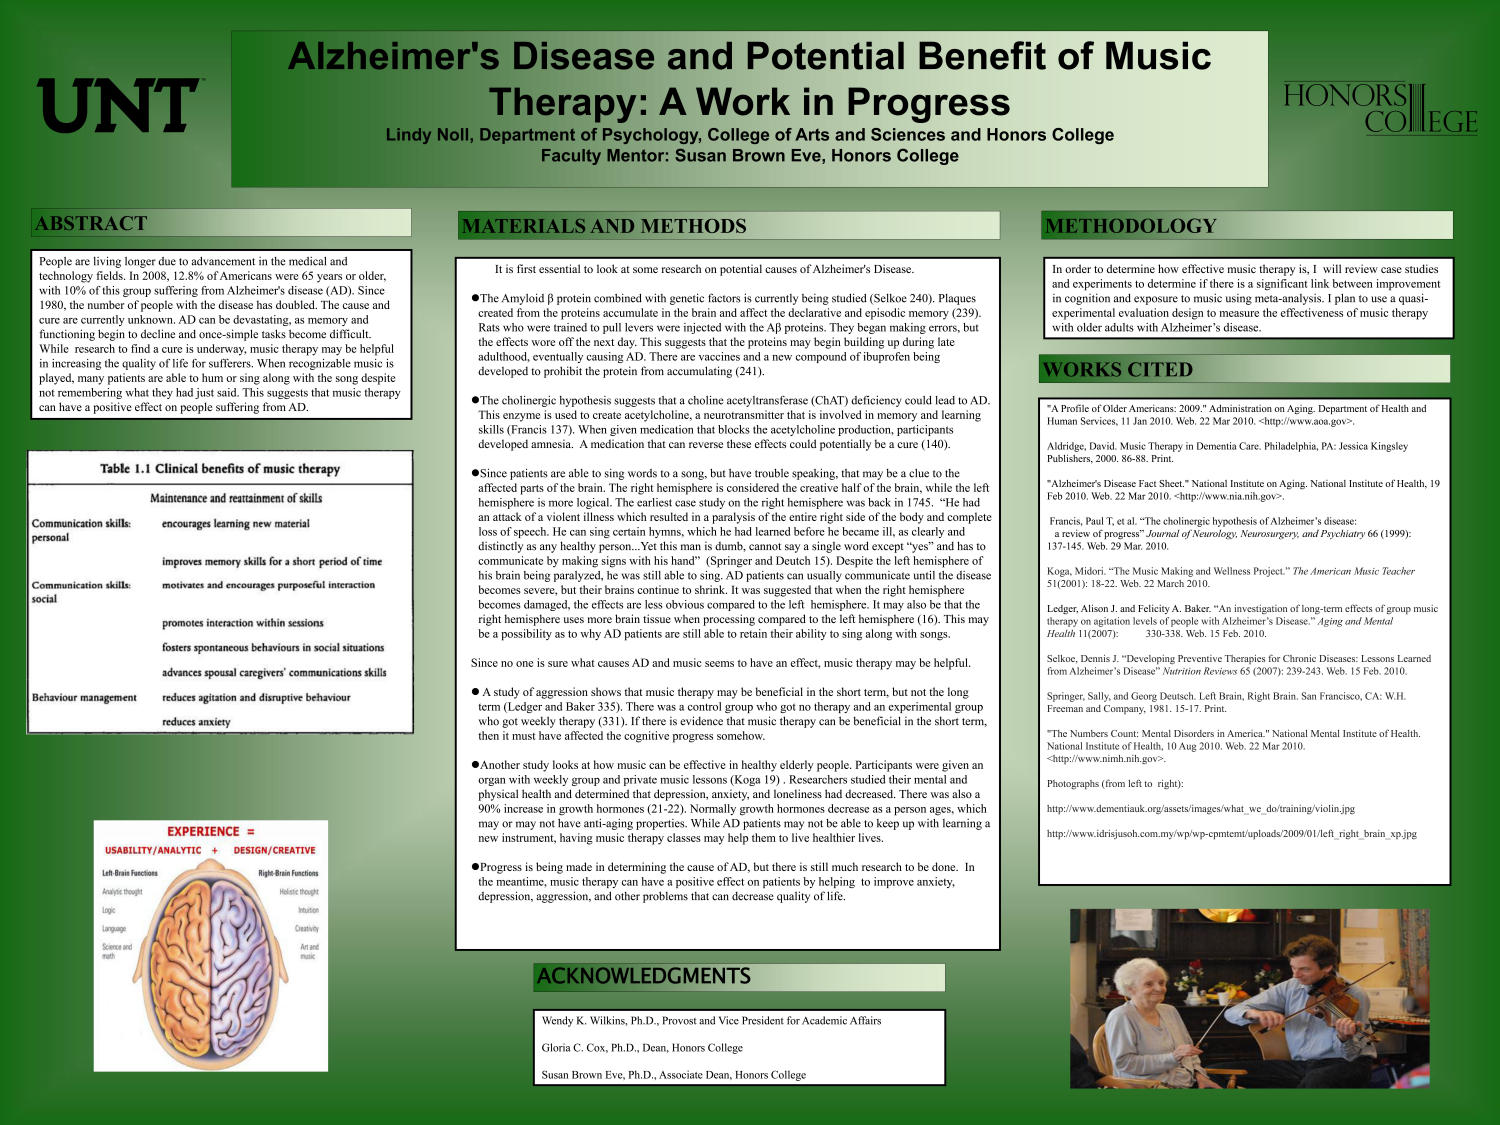 Alzheimer's Disease and Potential Benefit of Music Therapy: A Work in Progress                                                                                                      [Sequence #]: 1 of 1